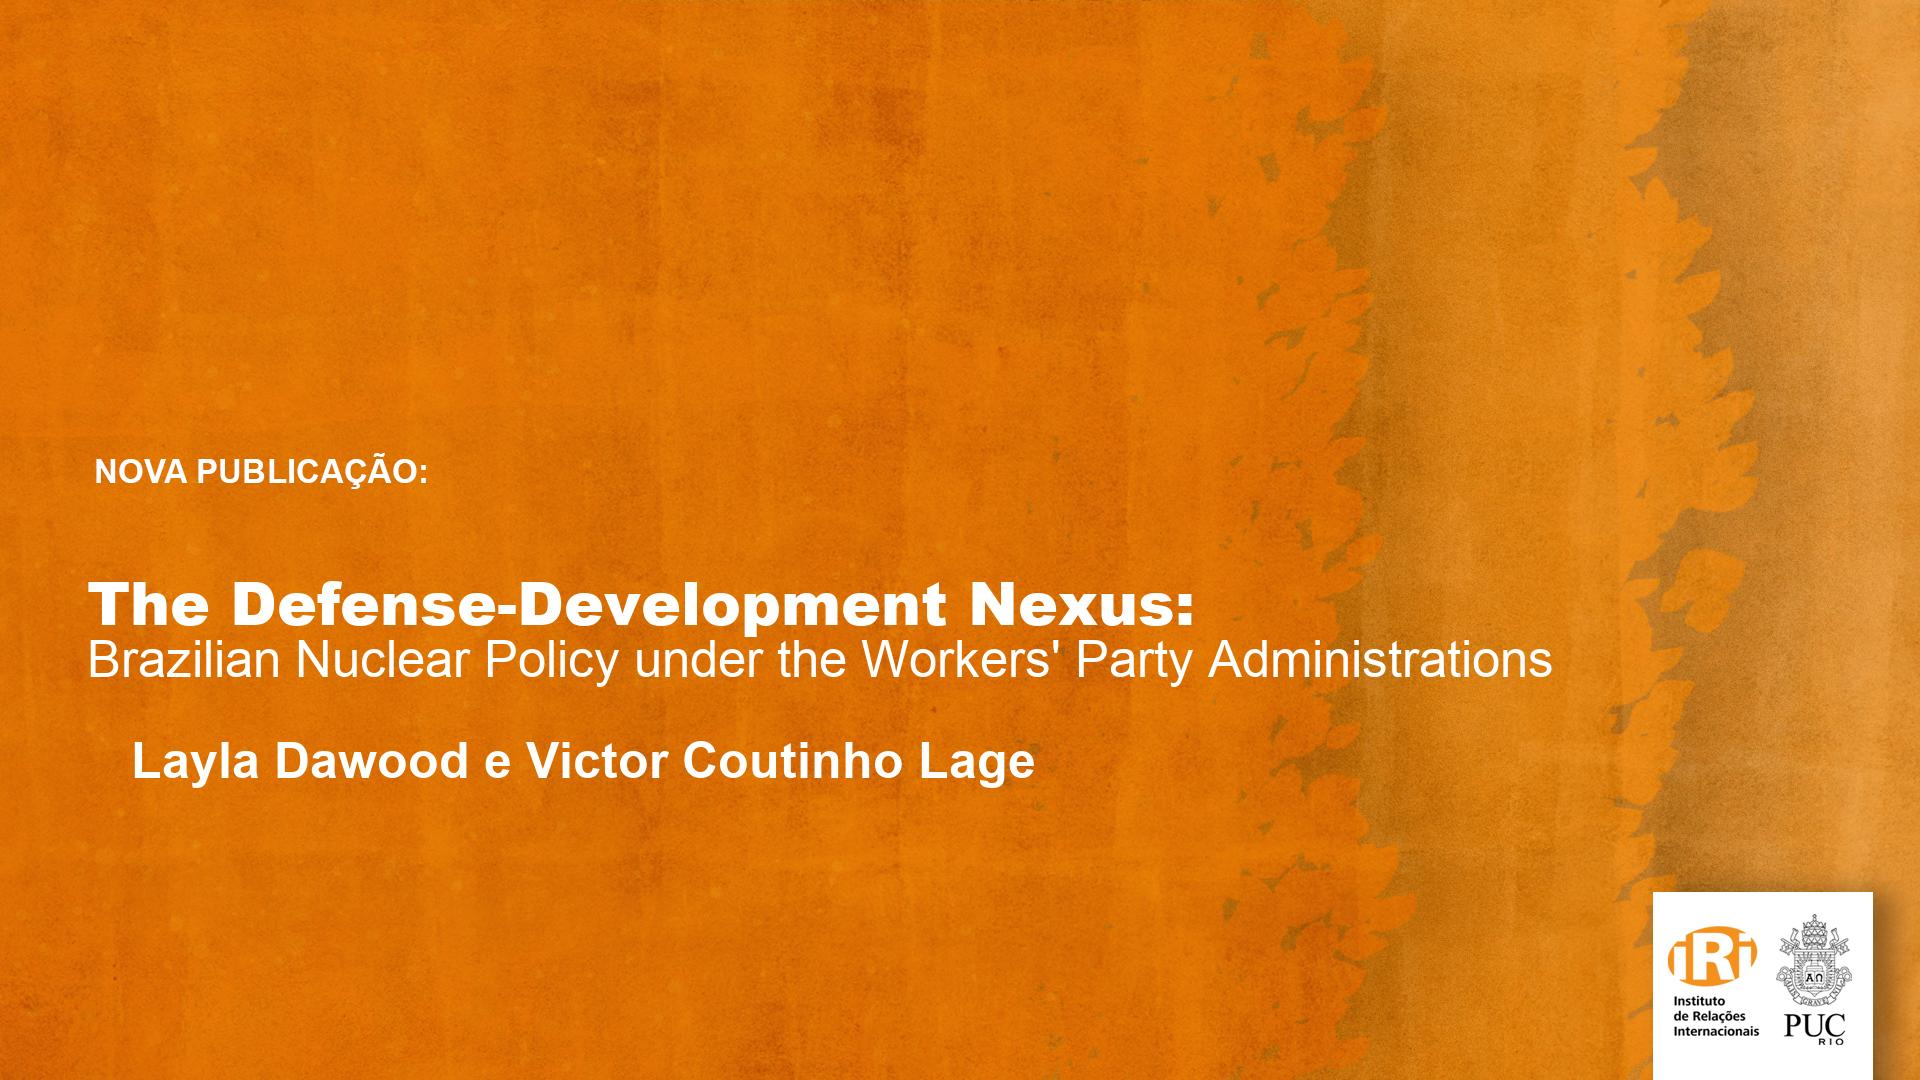 The Defense-Development Nexus: Brazilian Nuclear Policy under the Workers' Party Administrations